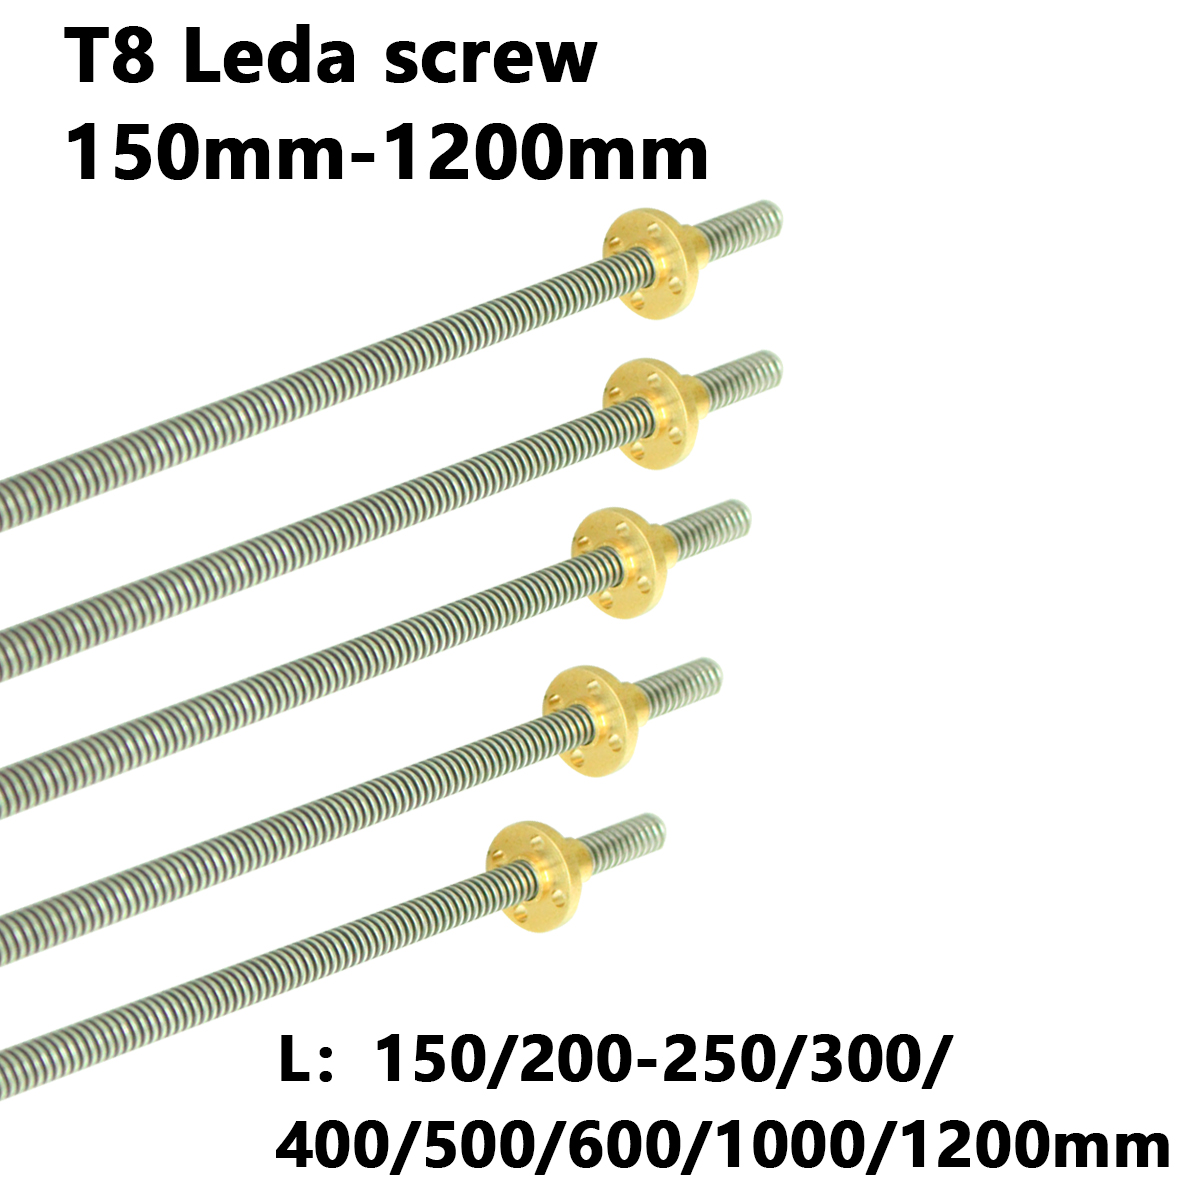 T8 Lead Screw Rod OD 8mm Pitch 2mm Lead 2mm 150 200 300 350 400 500 600 1000 1200 mm with Brass Nut For CNC 3D Printer image